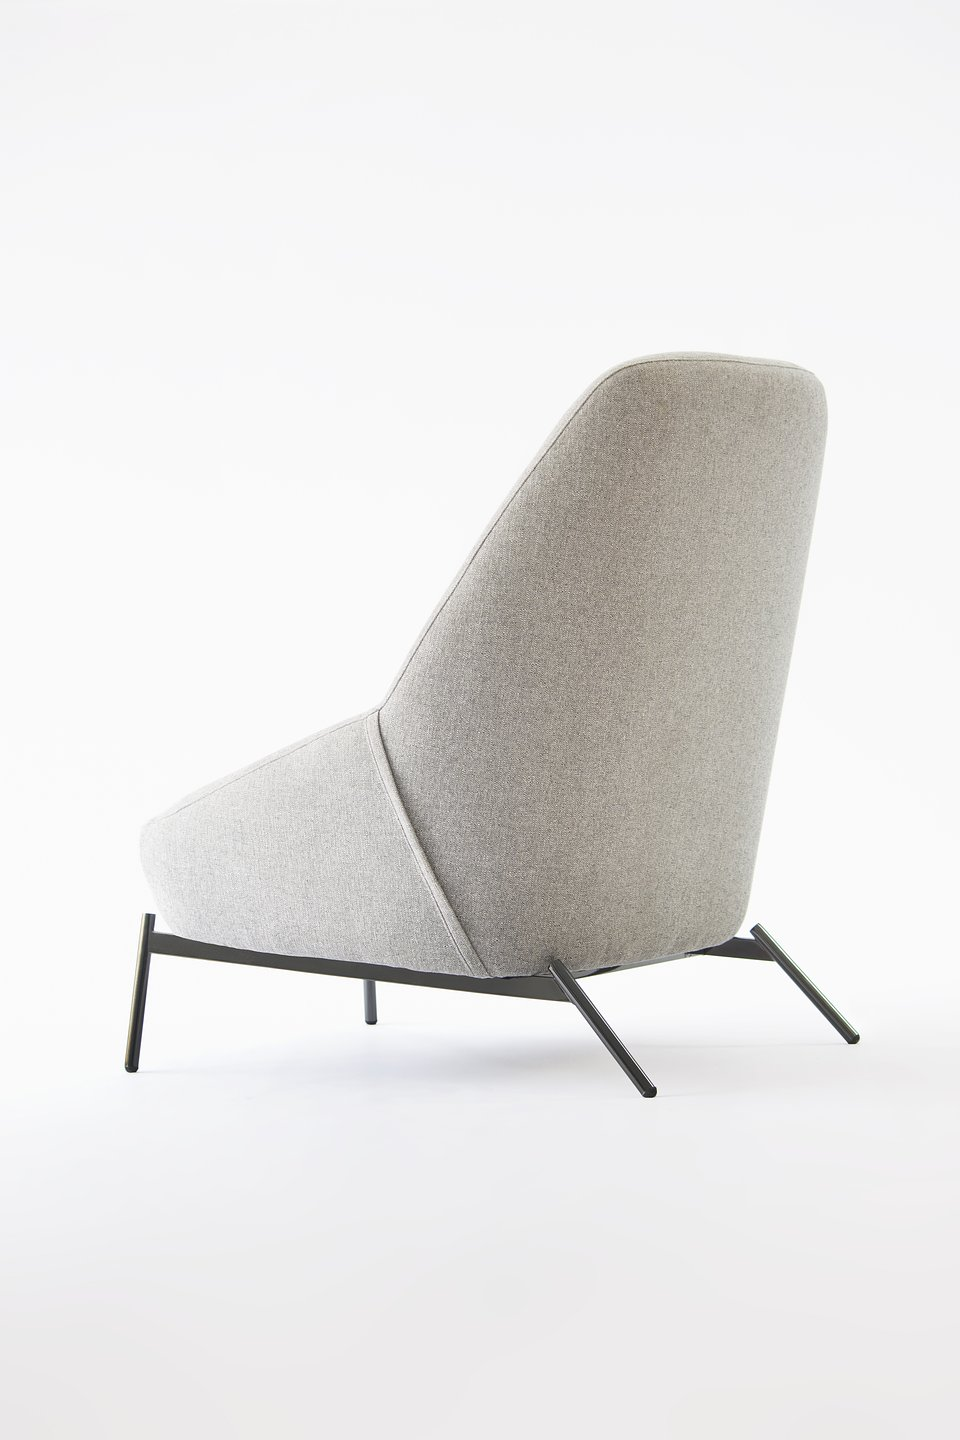 Gull armchair for Koo International (14).jpg